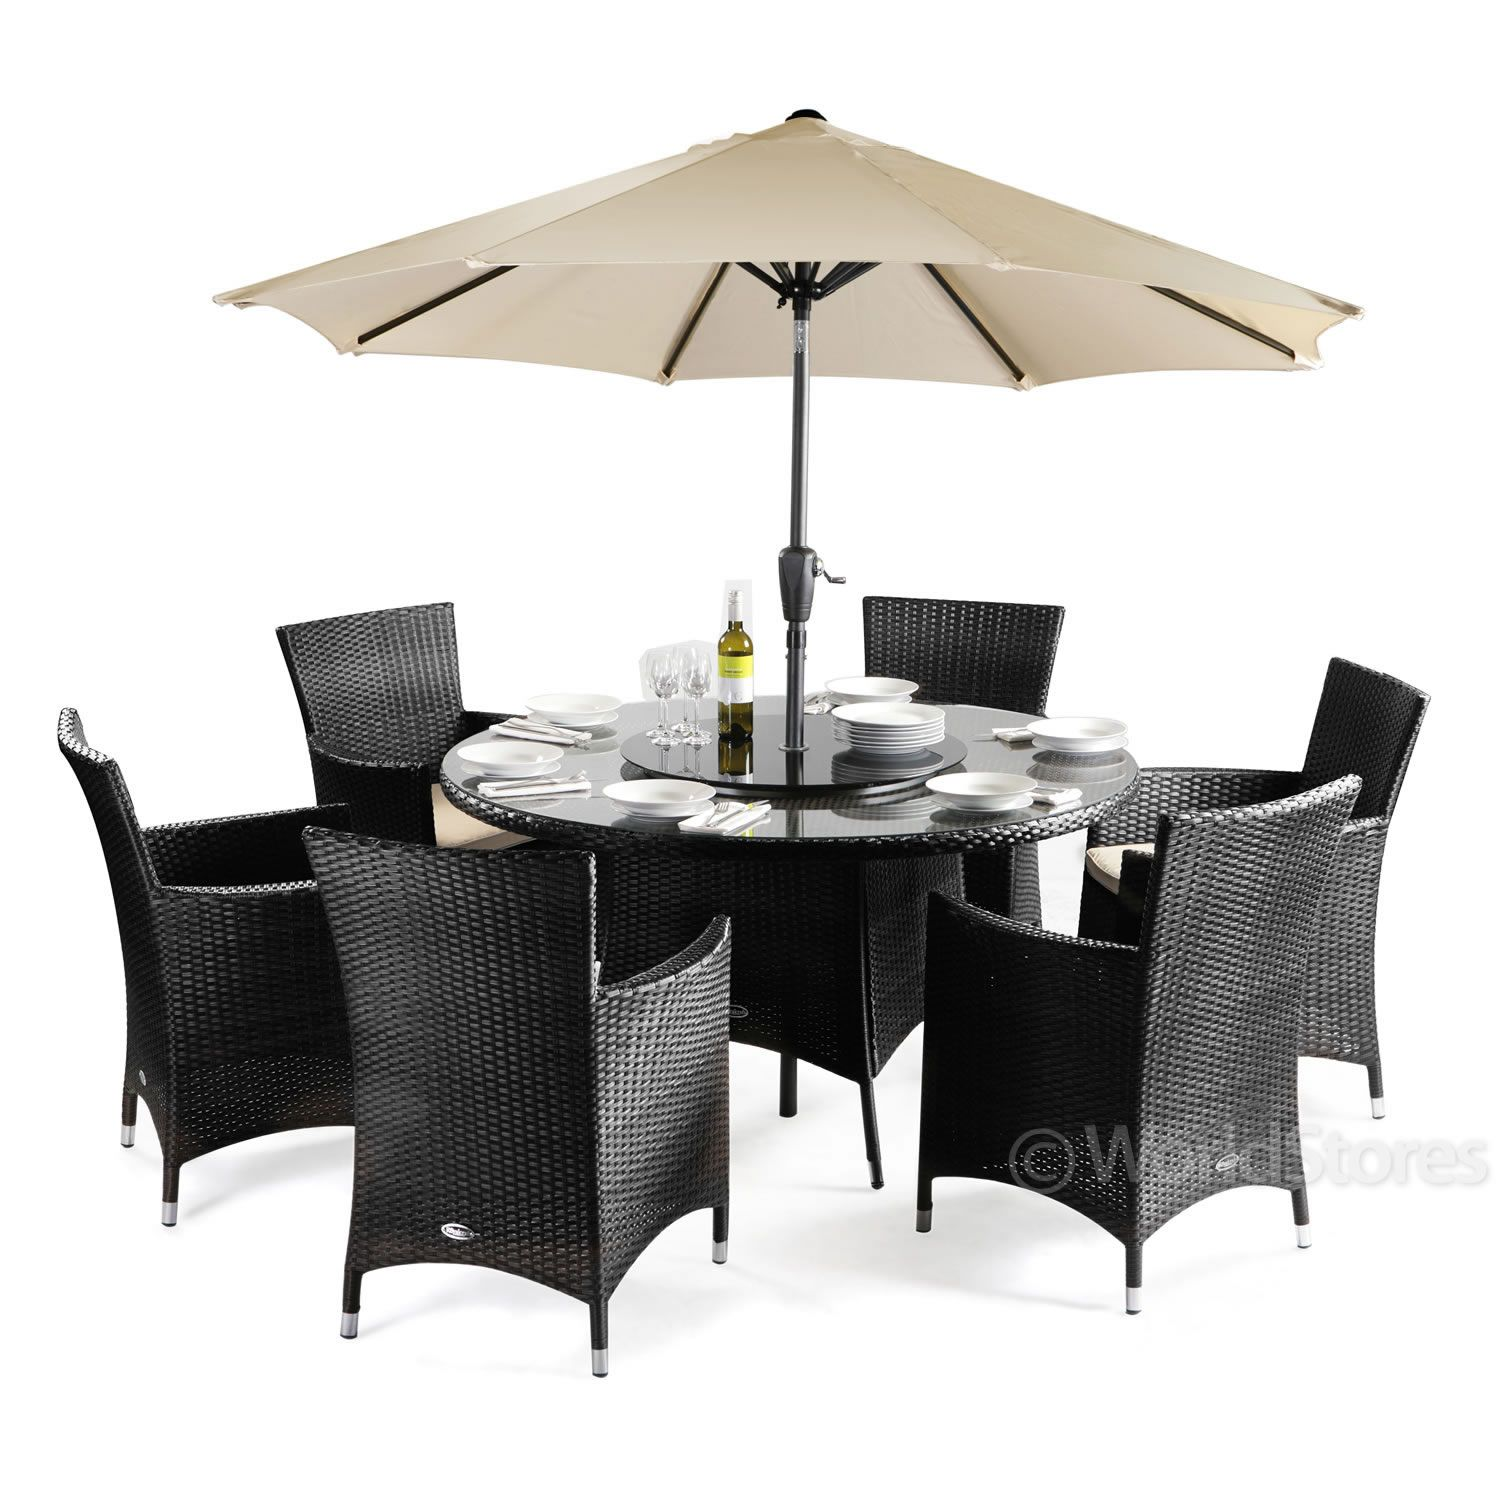 rattan round 6 chairs patio furniture set - Garden Furniture 6